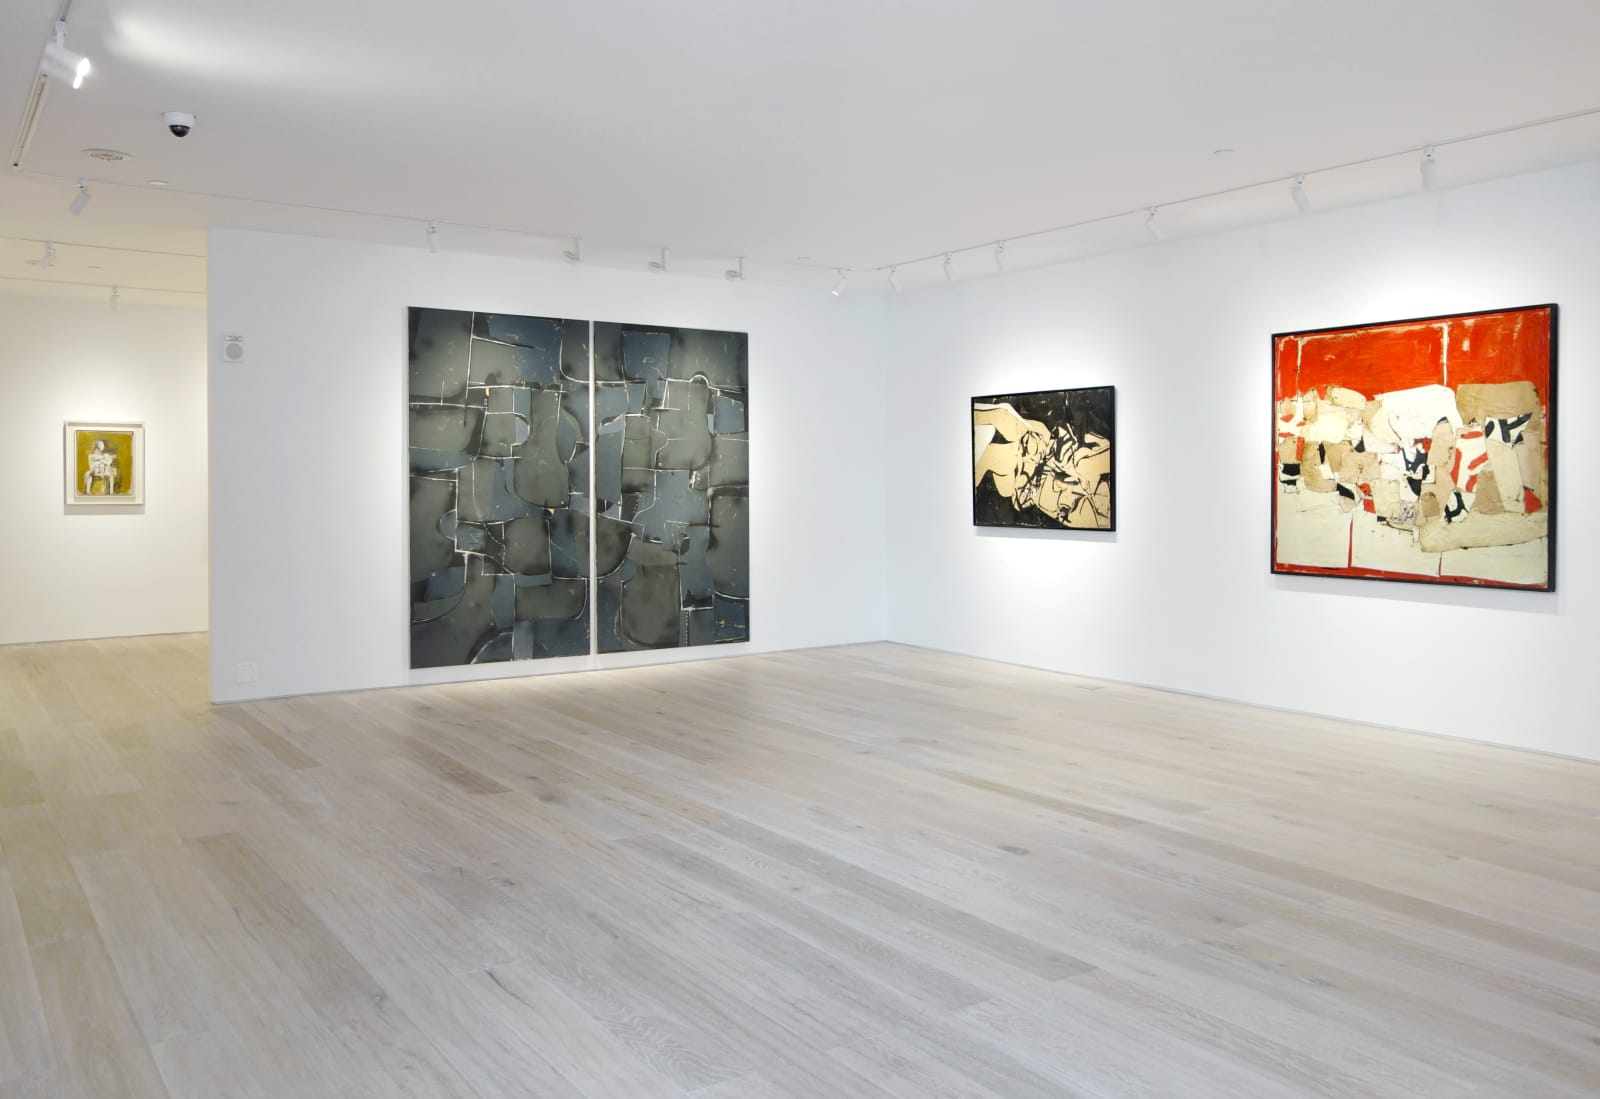 Hollis Taggart Galleries, 521 West 26th Street, 7th Floor, New York, NY (2016)